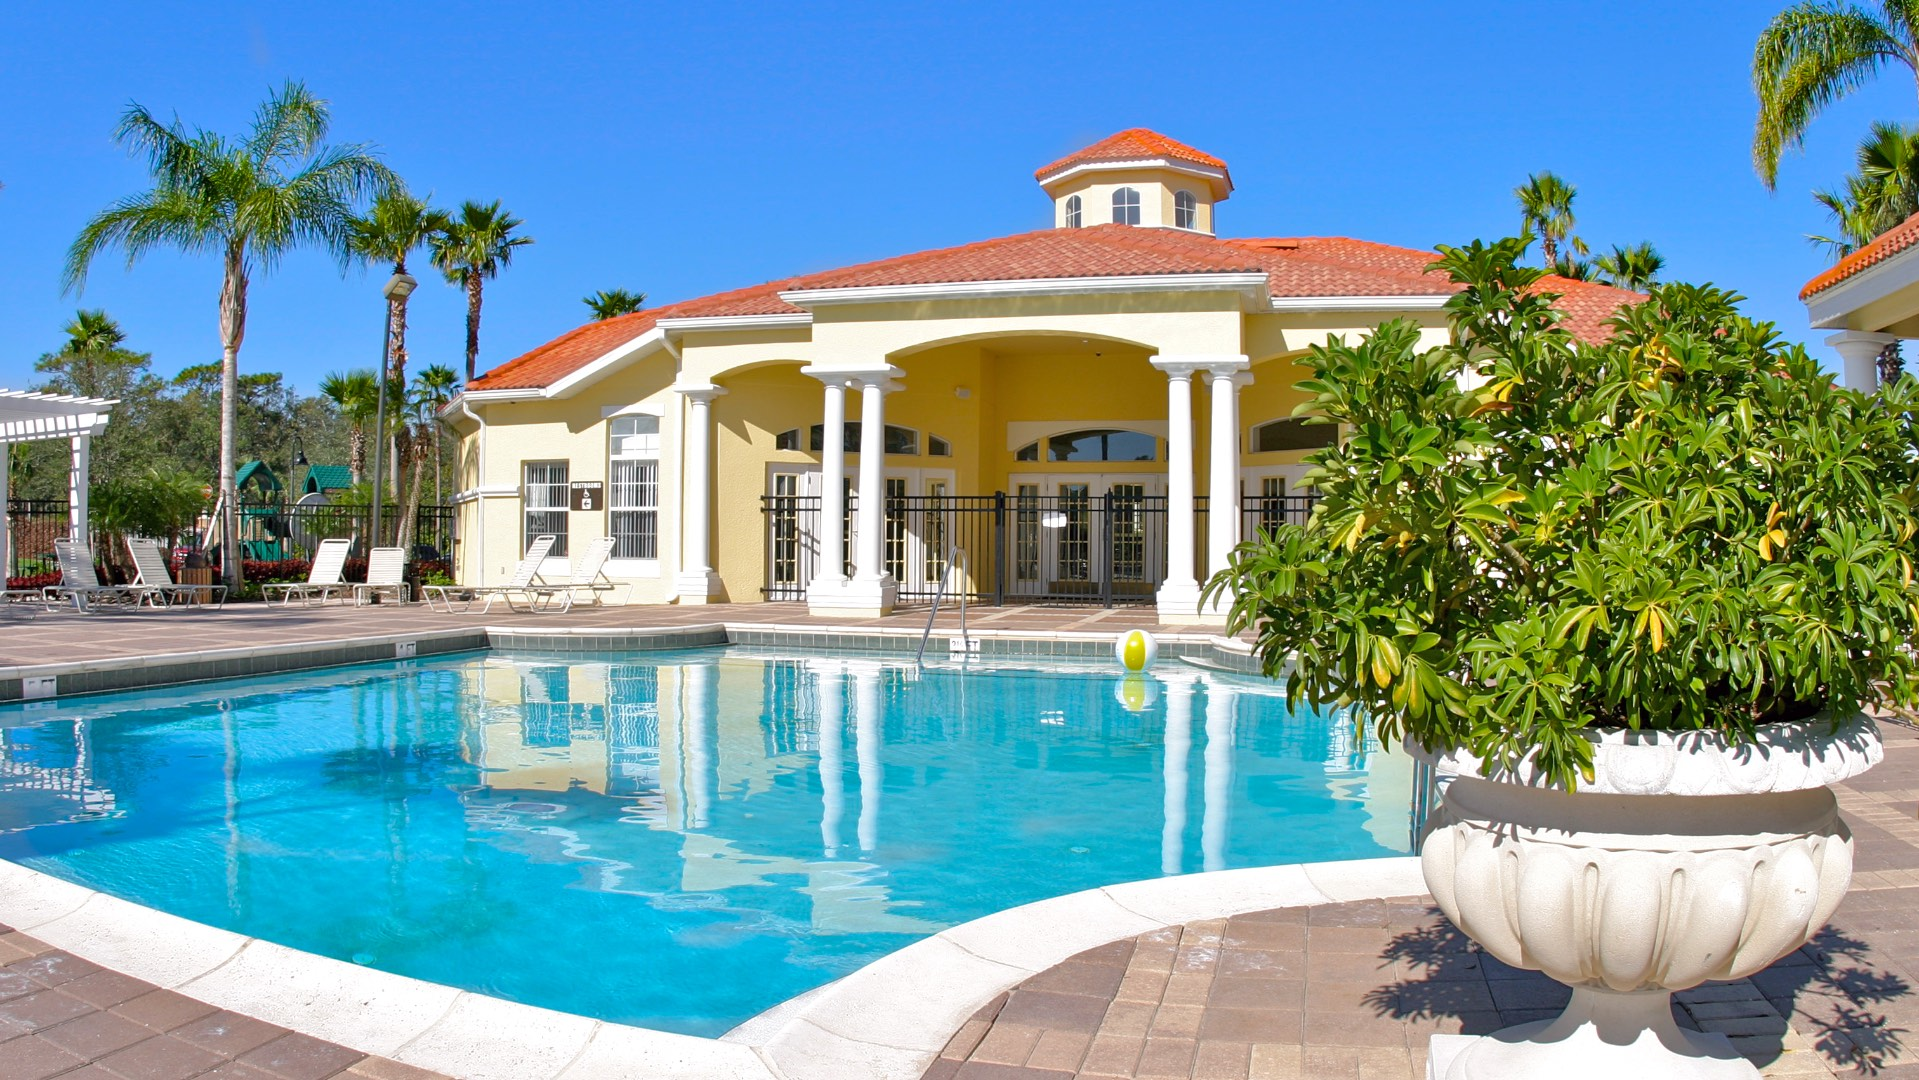 Apartment Norwich Townhome at Emerald Island Resort photo 16563890